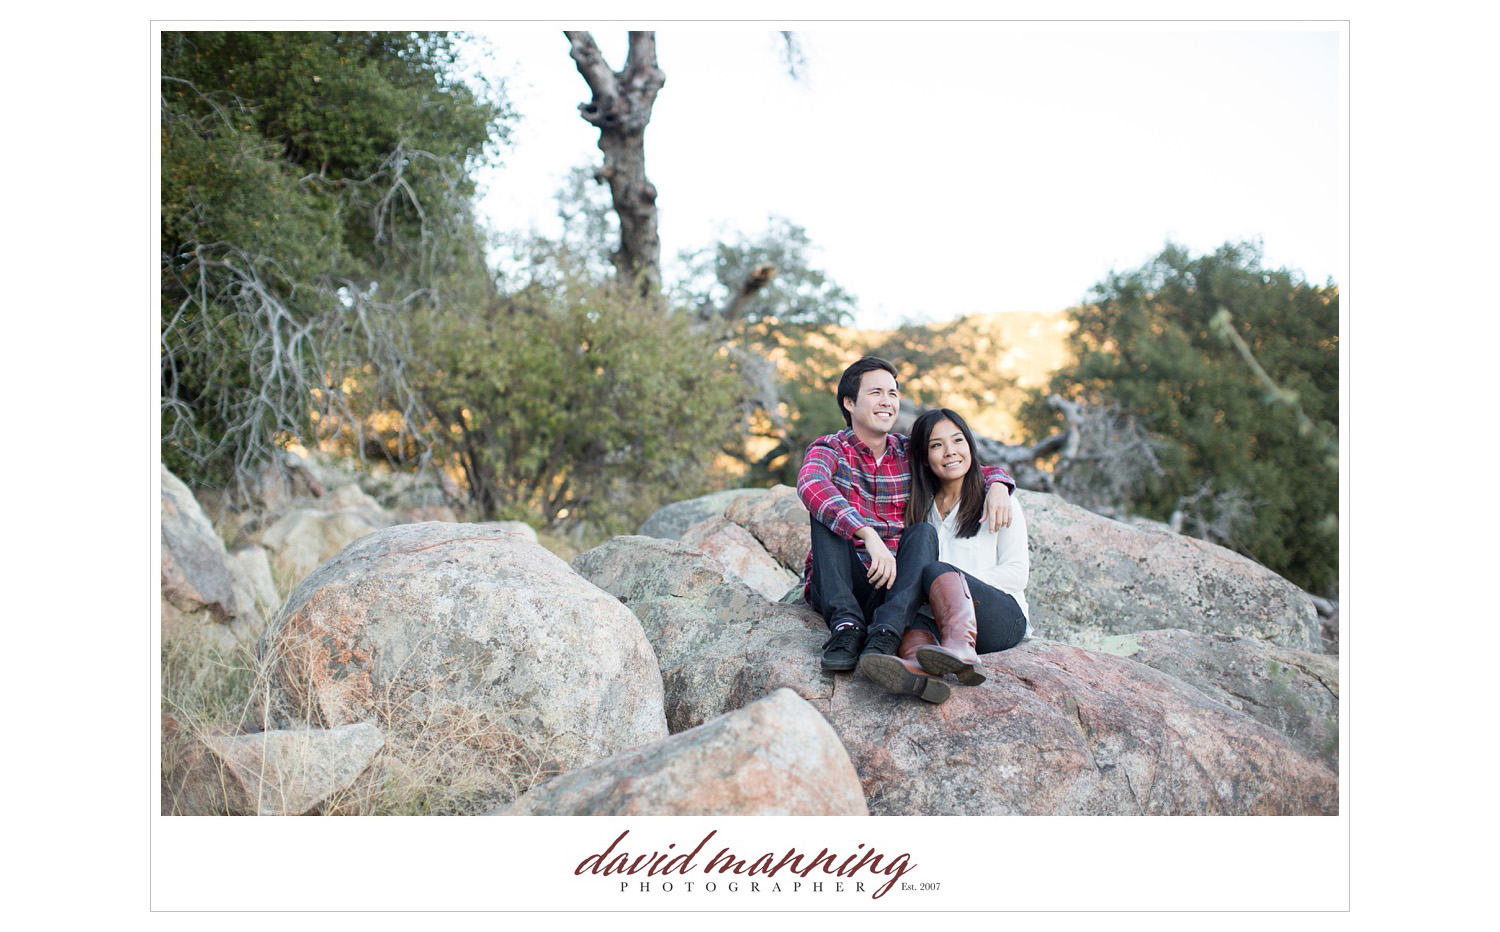 Del-Mar-Ramona-Julian-Engagement-Photos-David-Manning-Photographers-0011.jpg